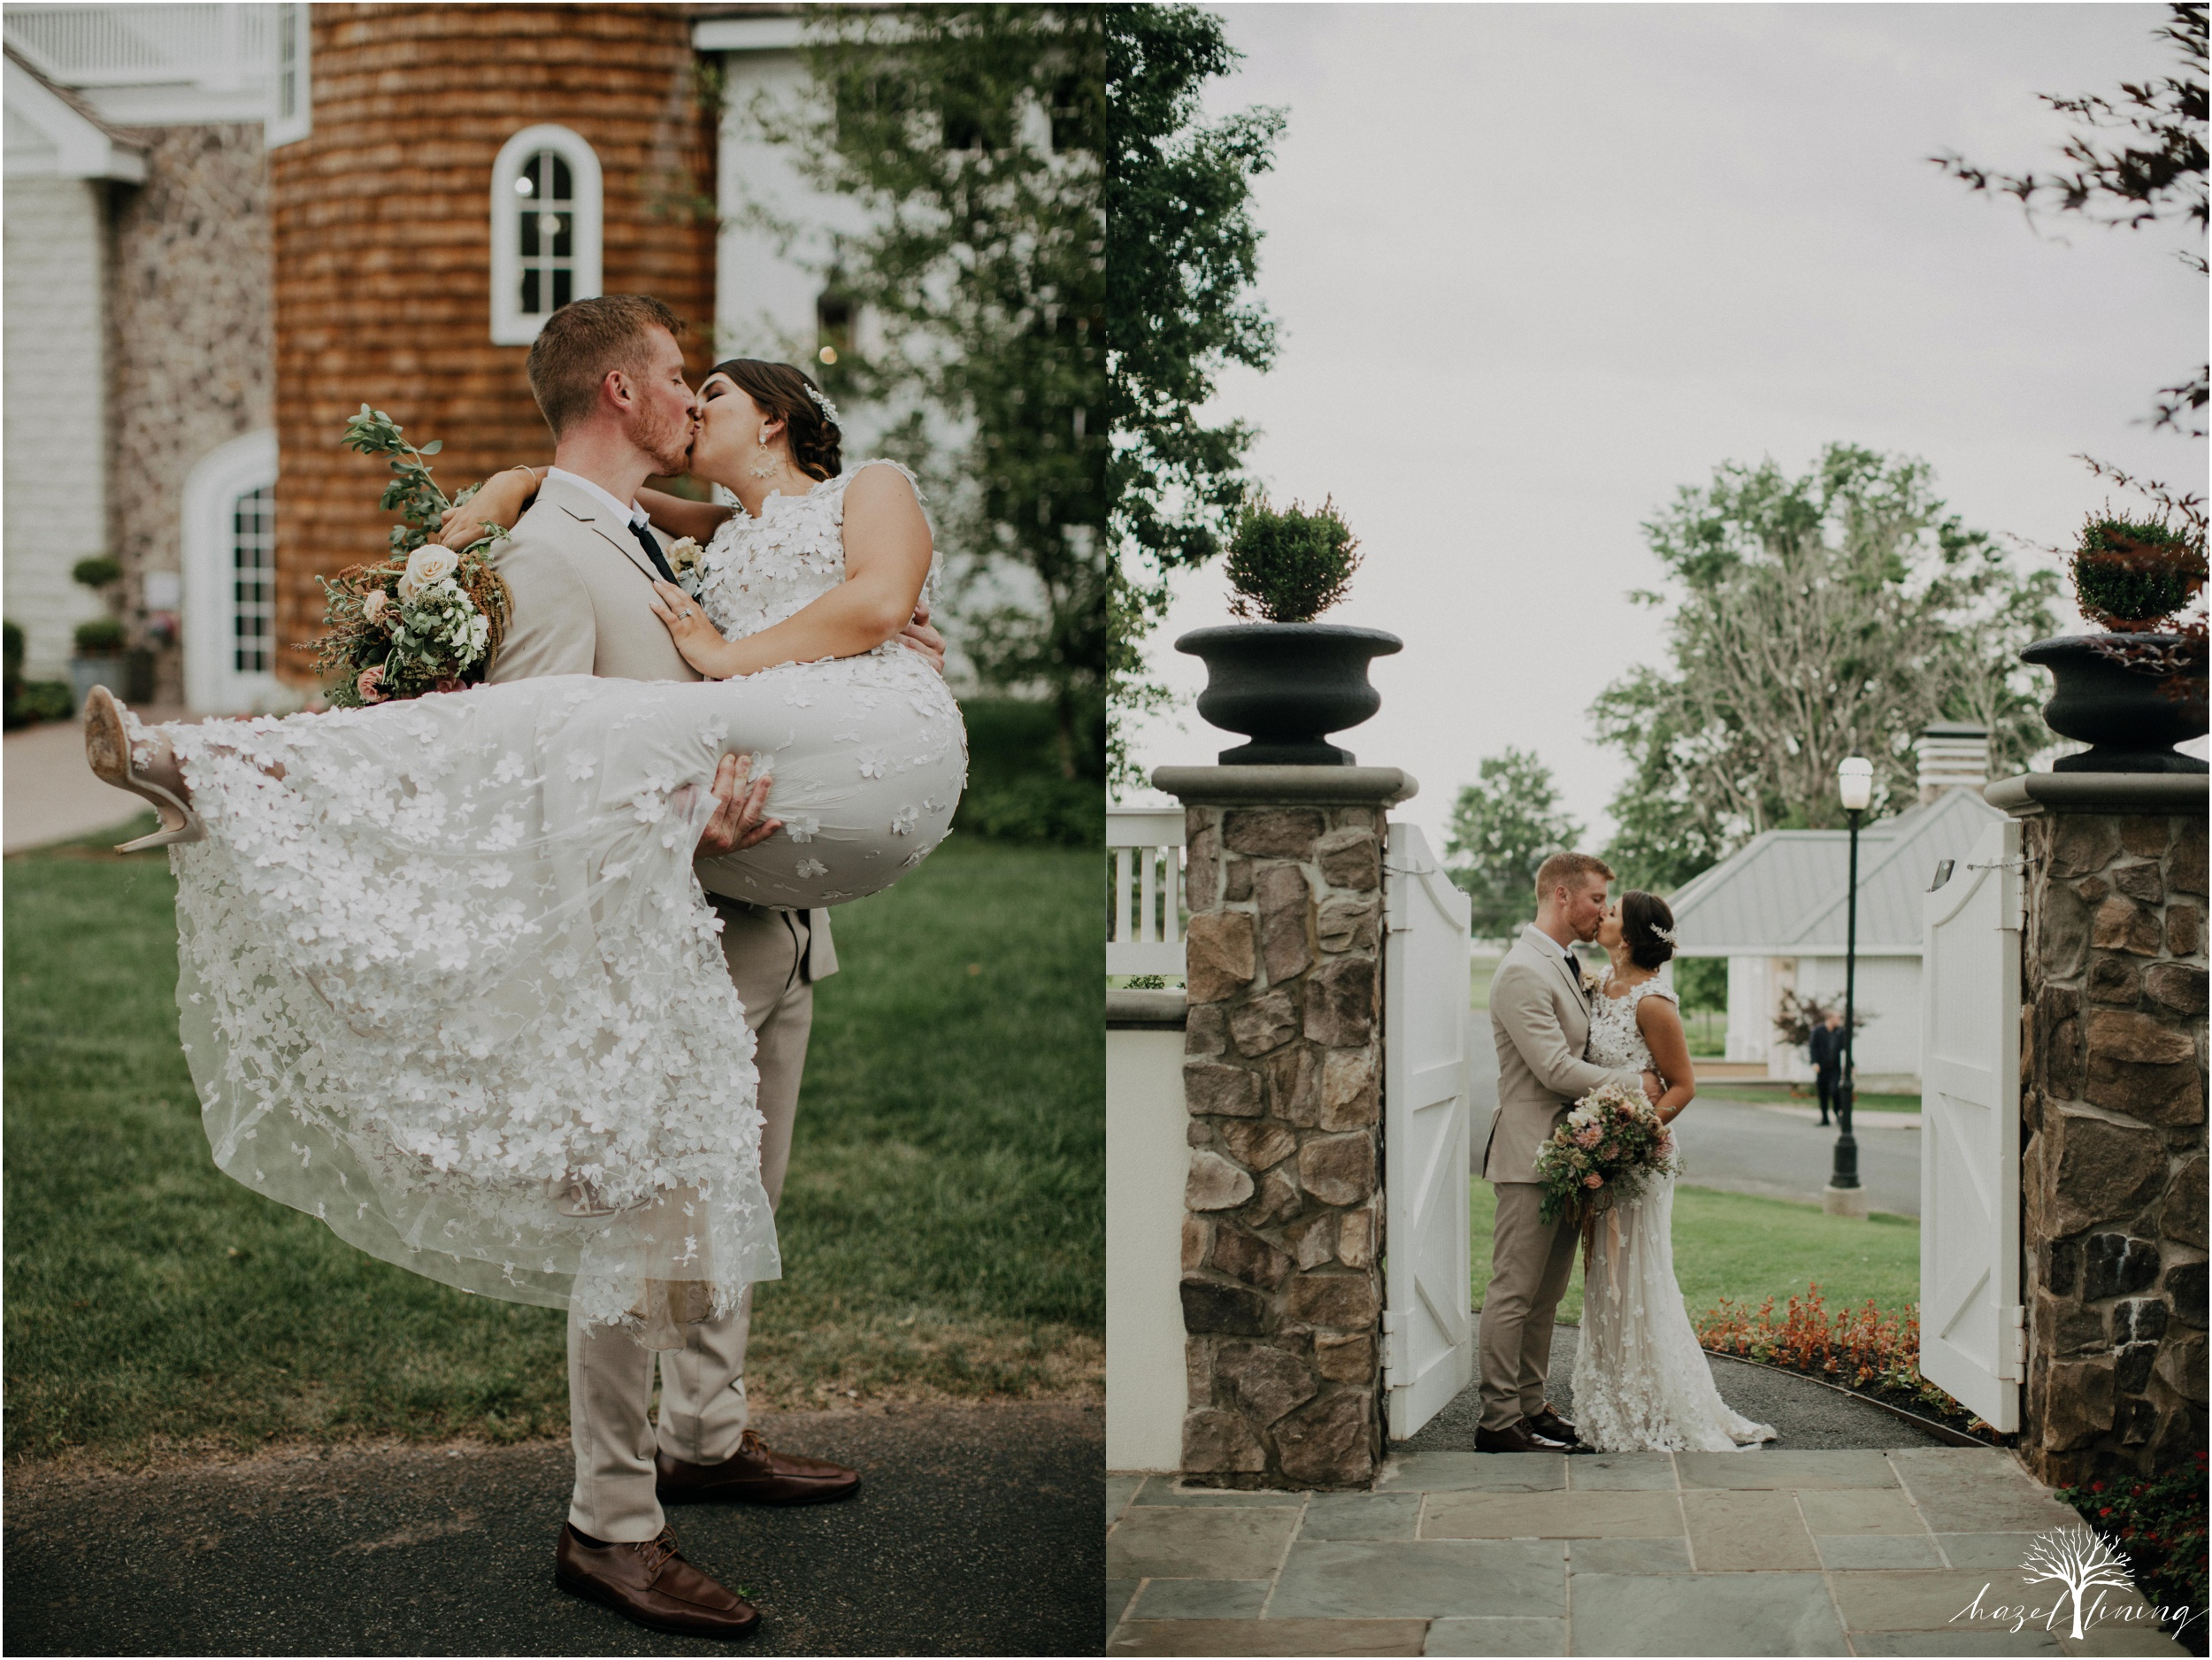 carl-chloe-the-ryland-inn-whitehouse-station-new-jersey-styled-squad-hazel-lining-photography-destination-elopement-wedding-engagement-photography_0038.jpg